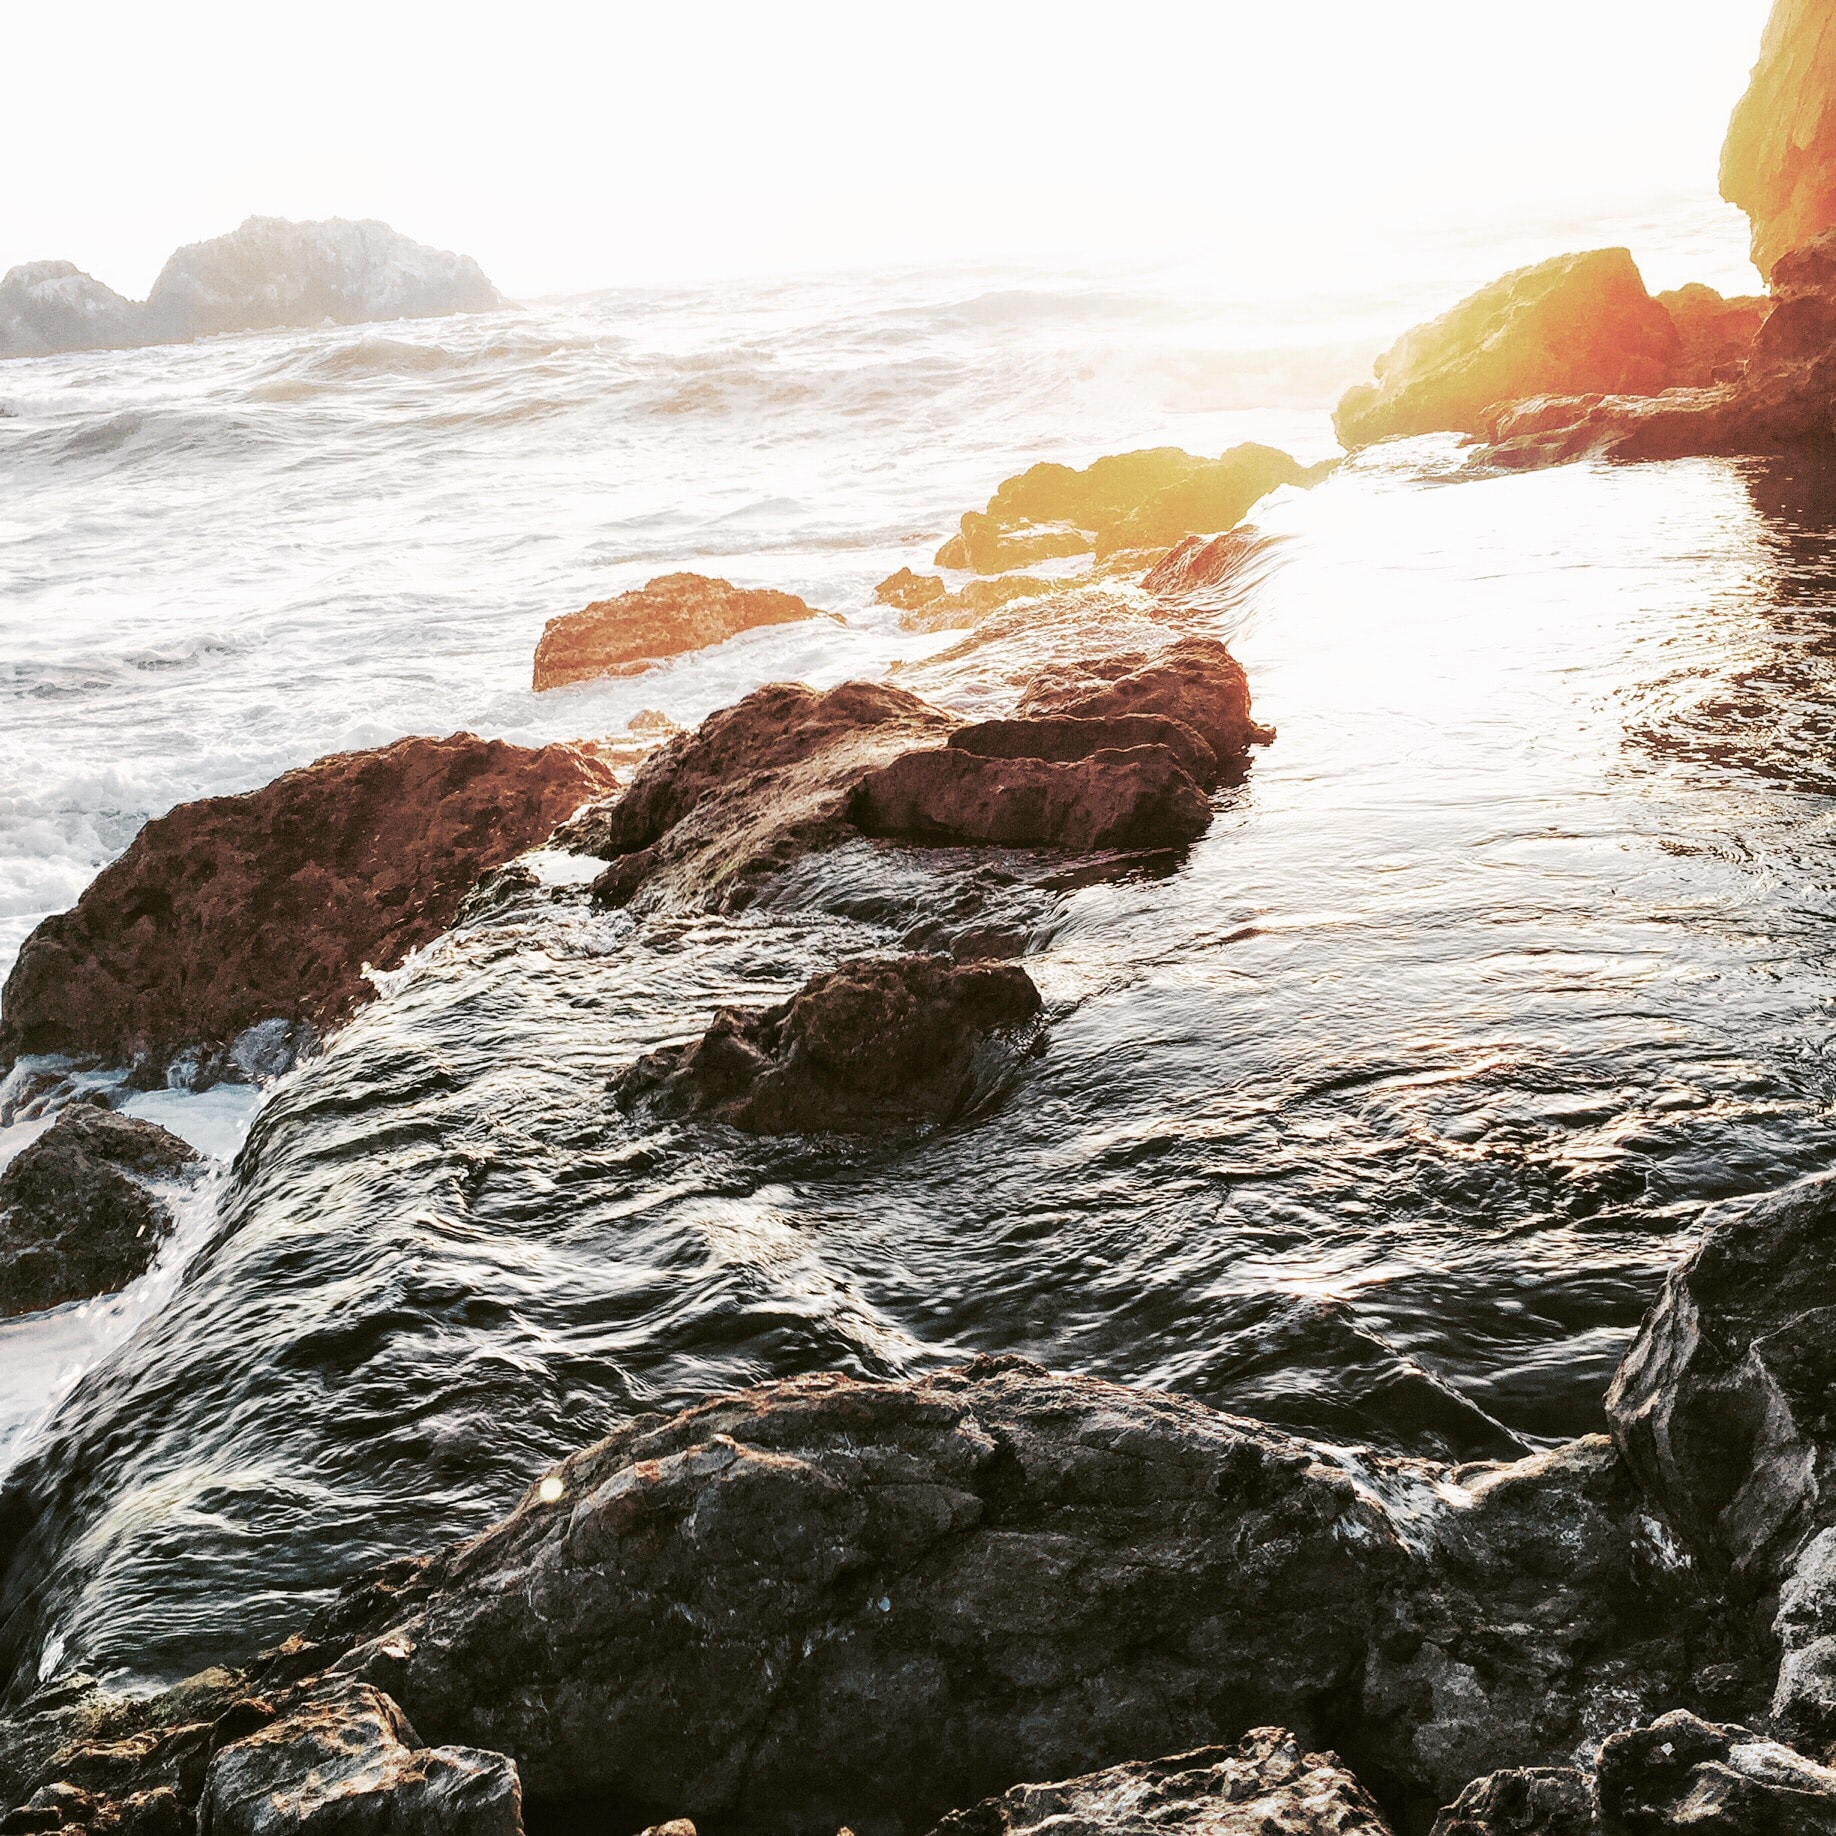 Free Unsplash photo from Esther Cuan